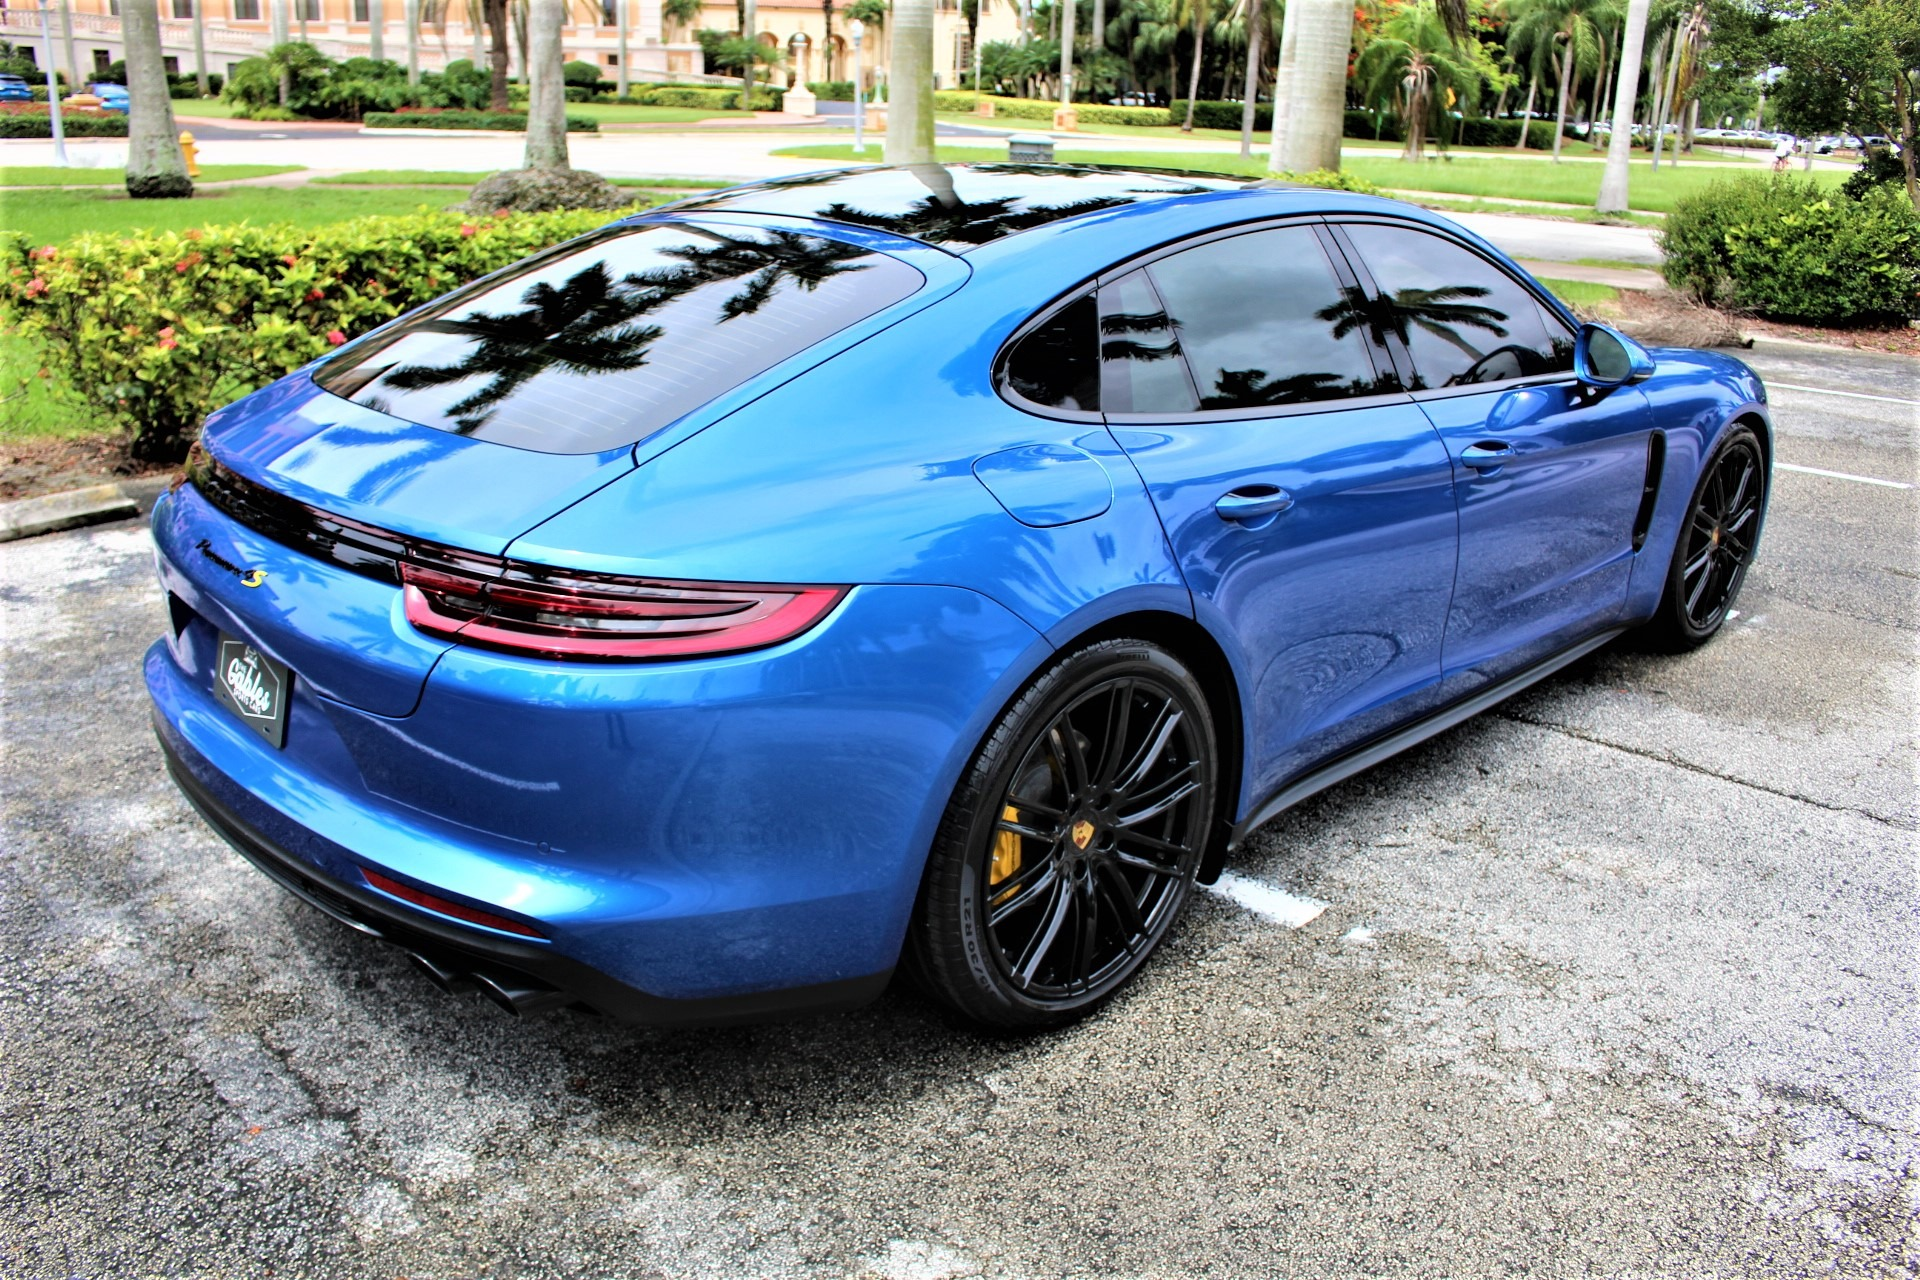 Used 2017 Porsche Panamera 4S for sale Sold at The Gables Sports Cars in Miami FL 33146 2